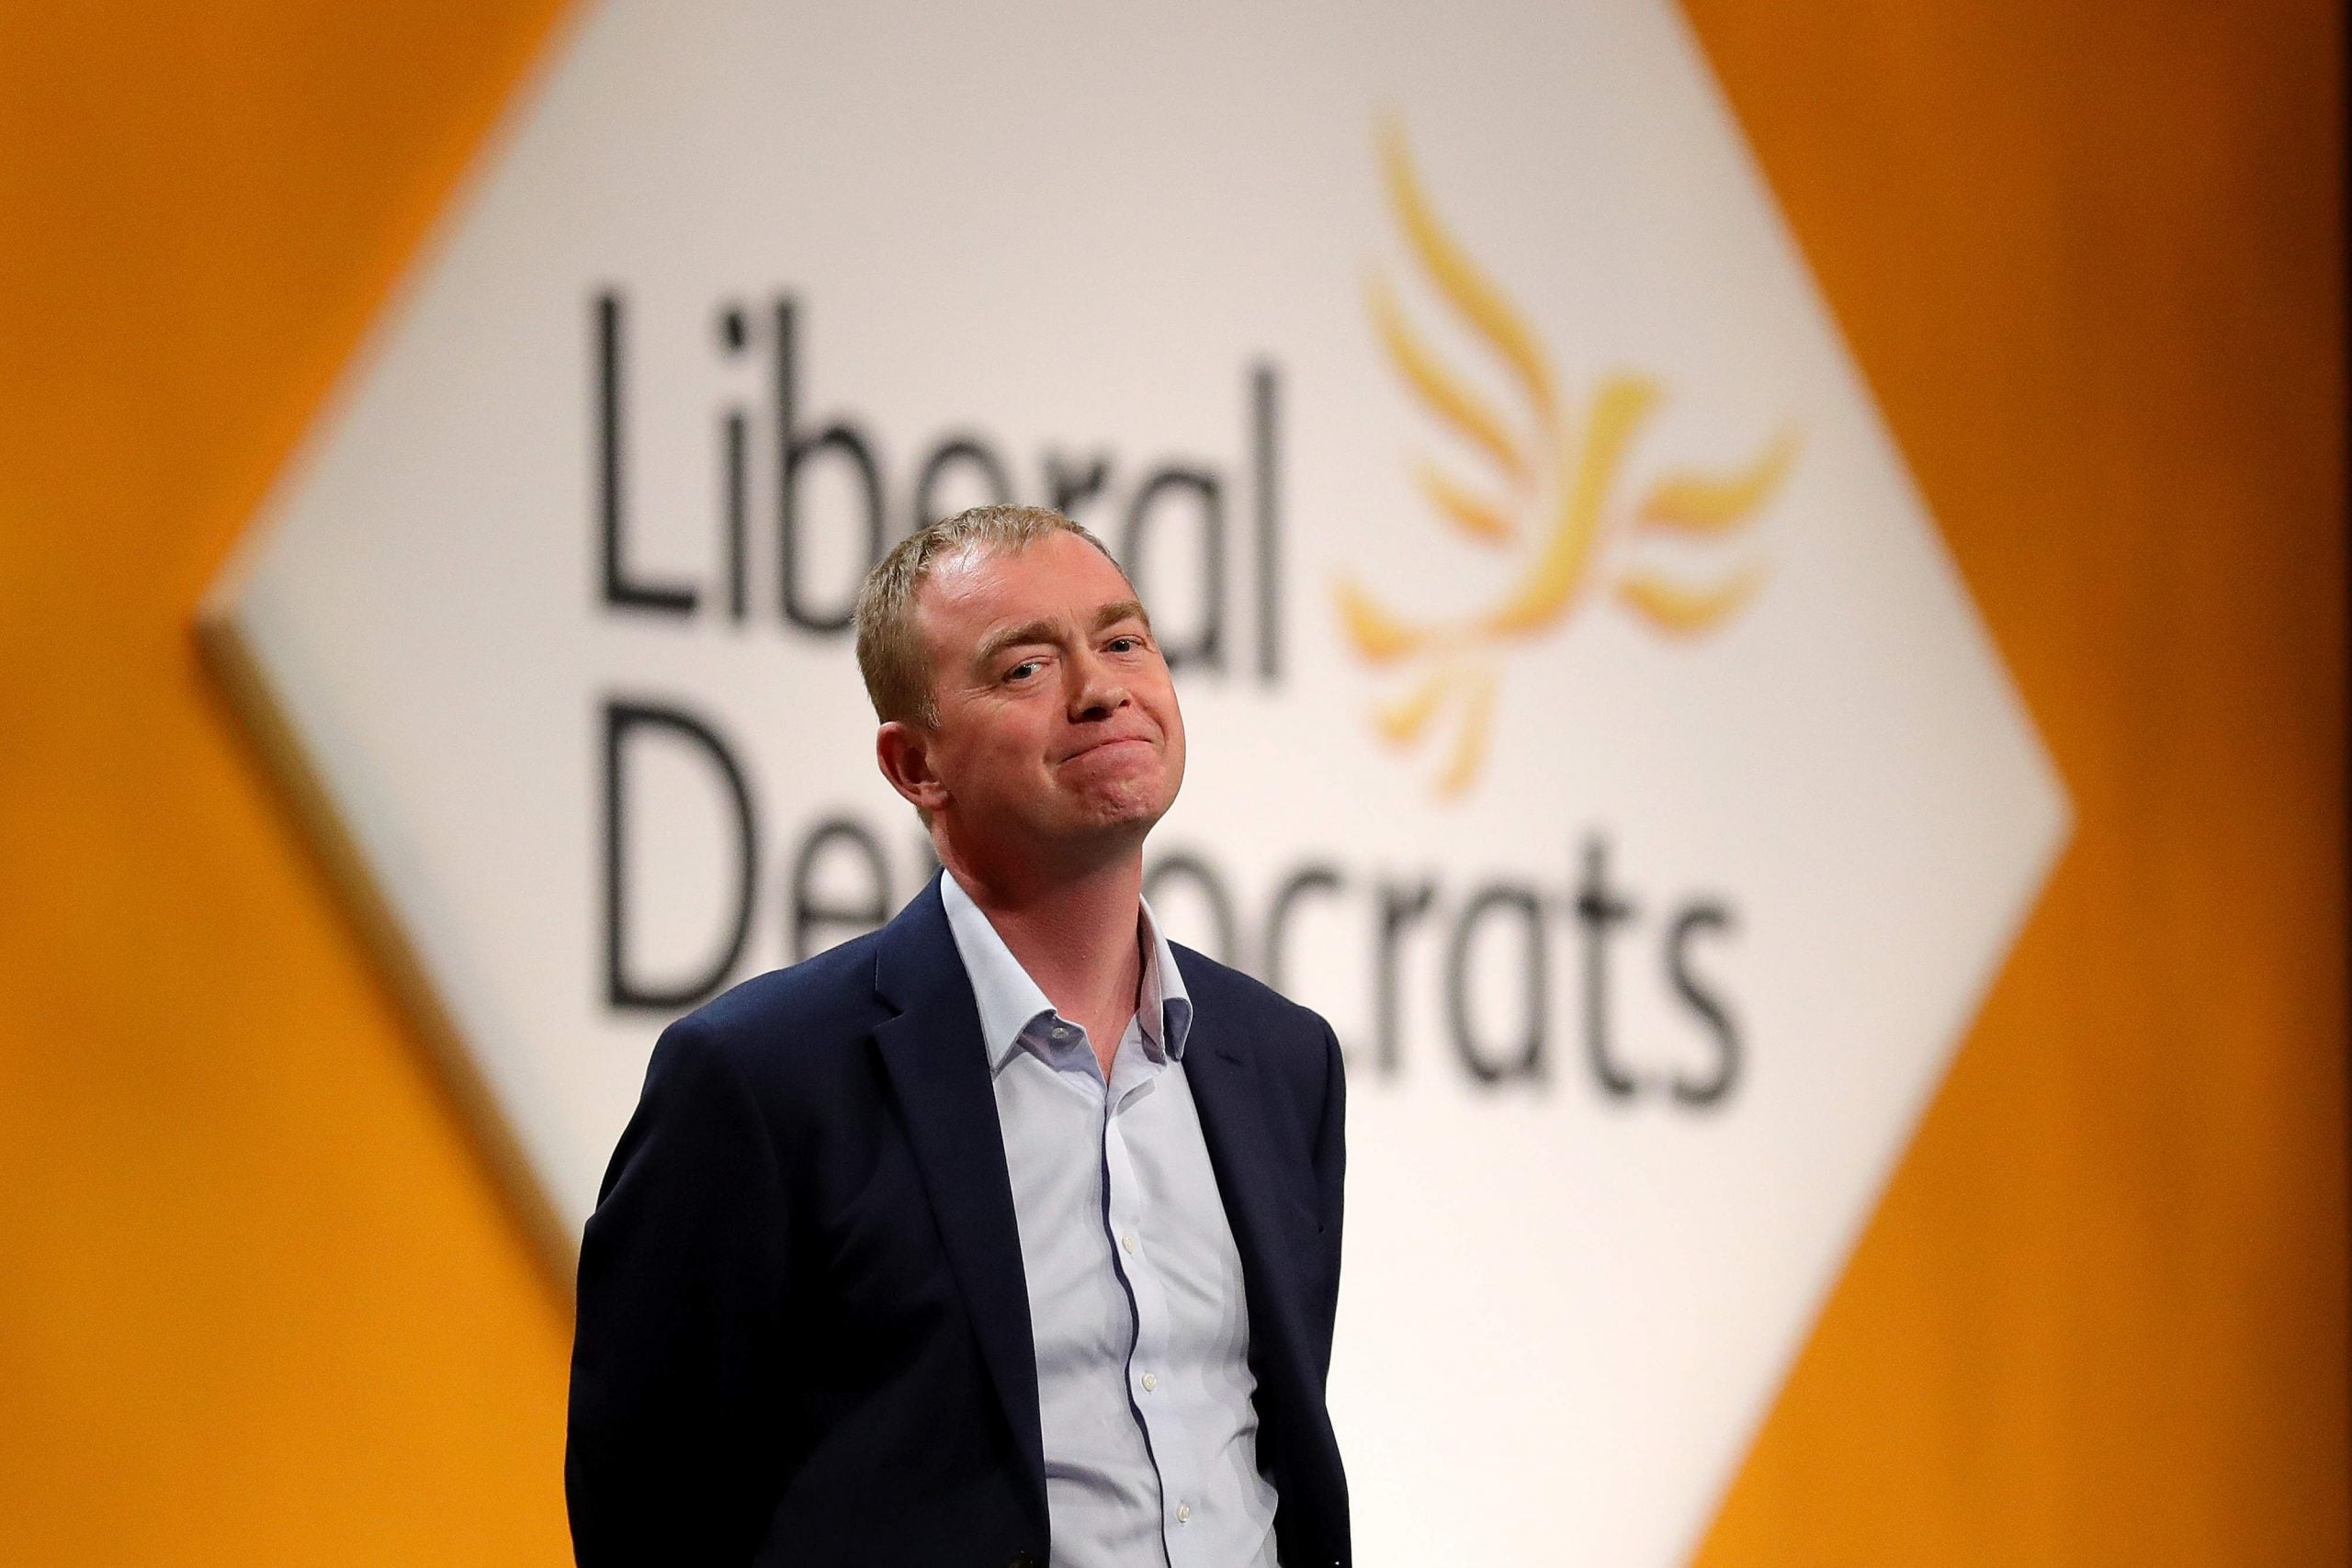 Why has it all gone wrong for the Liberal Democrats?